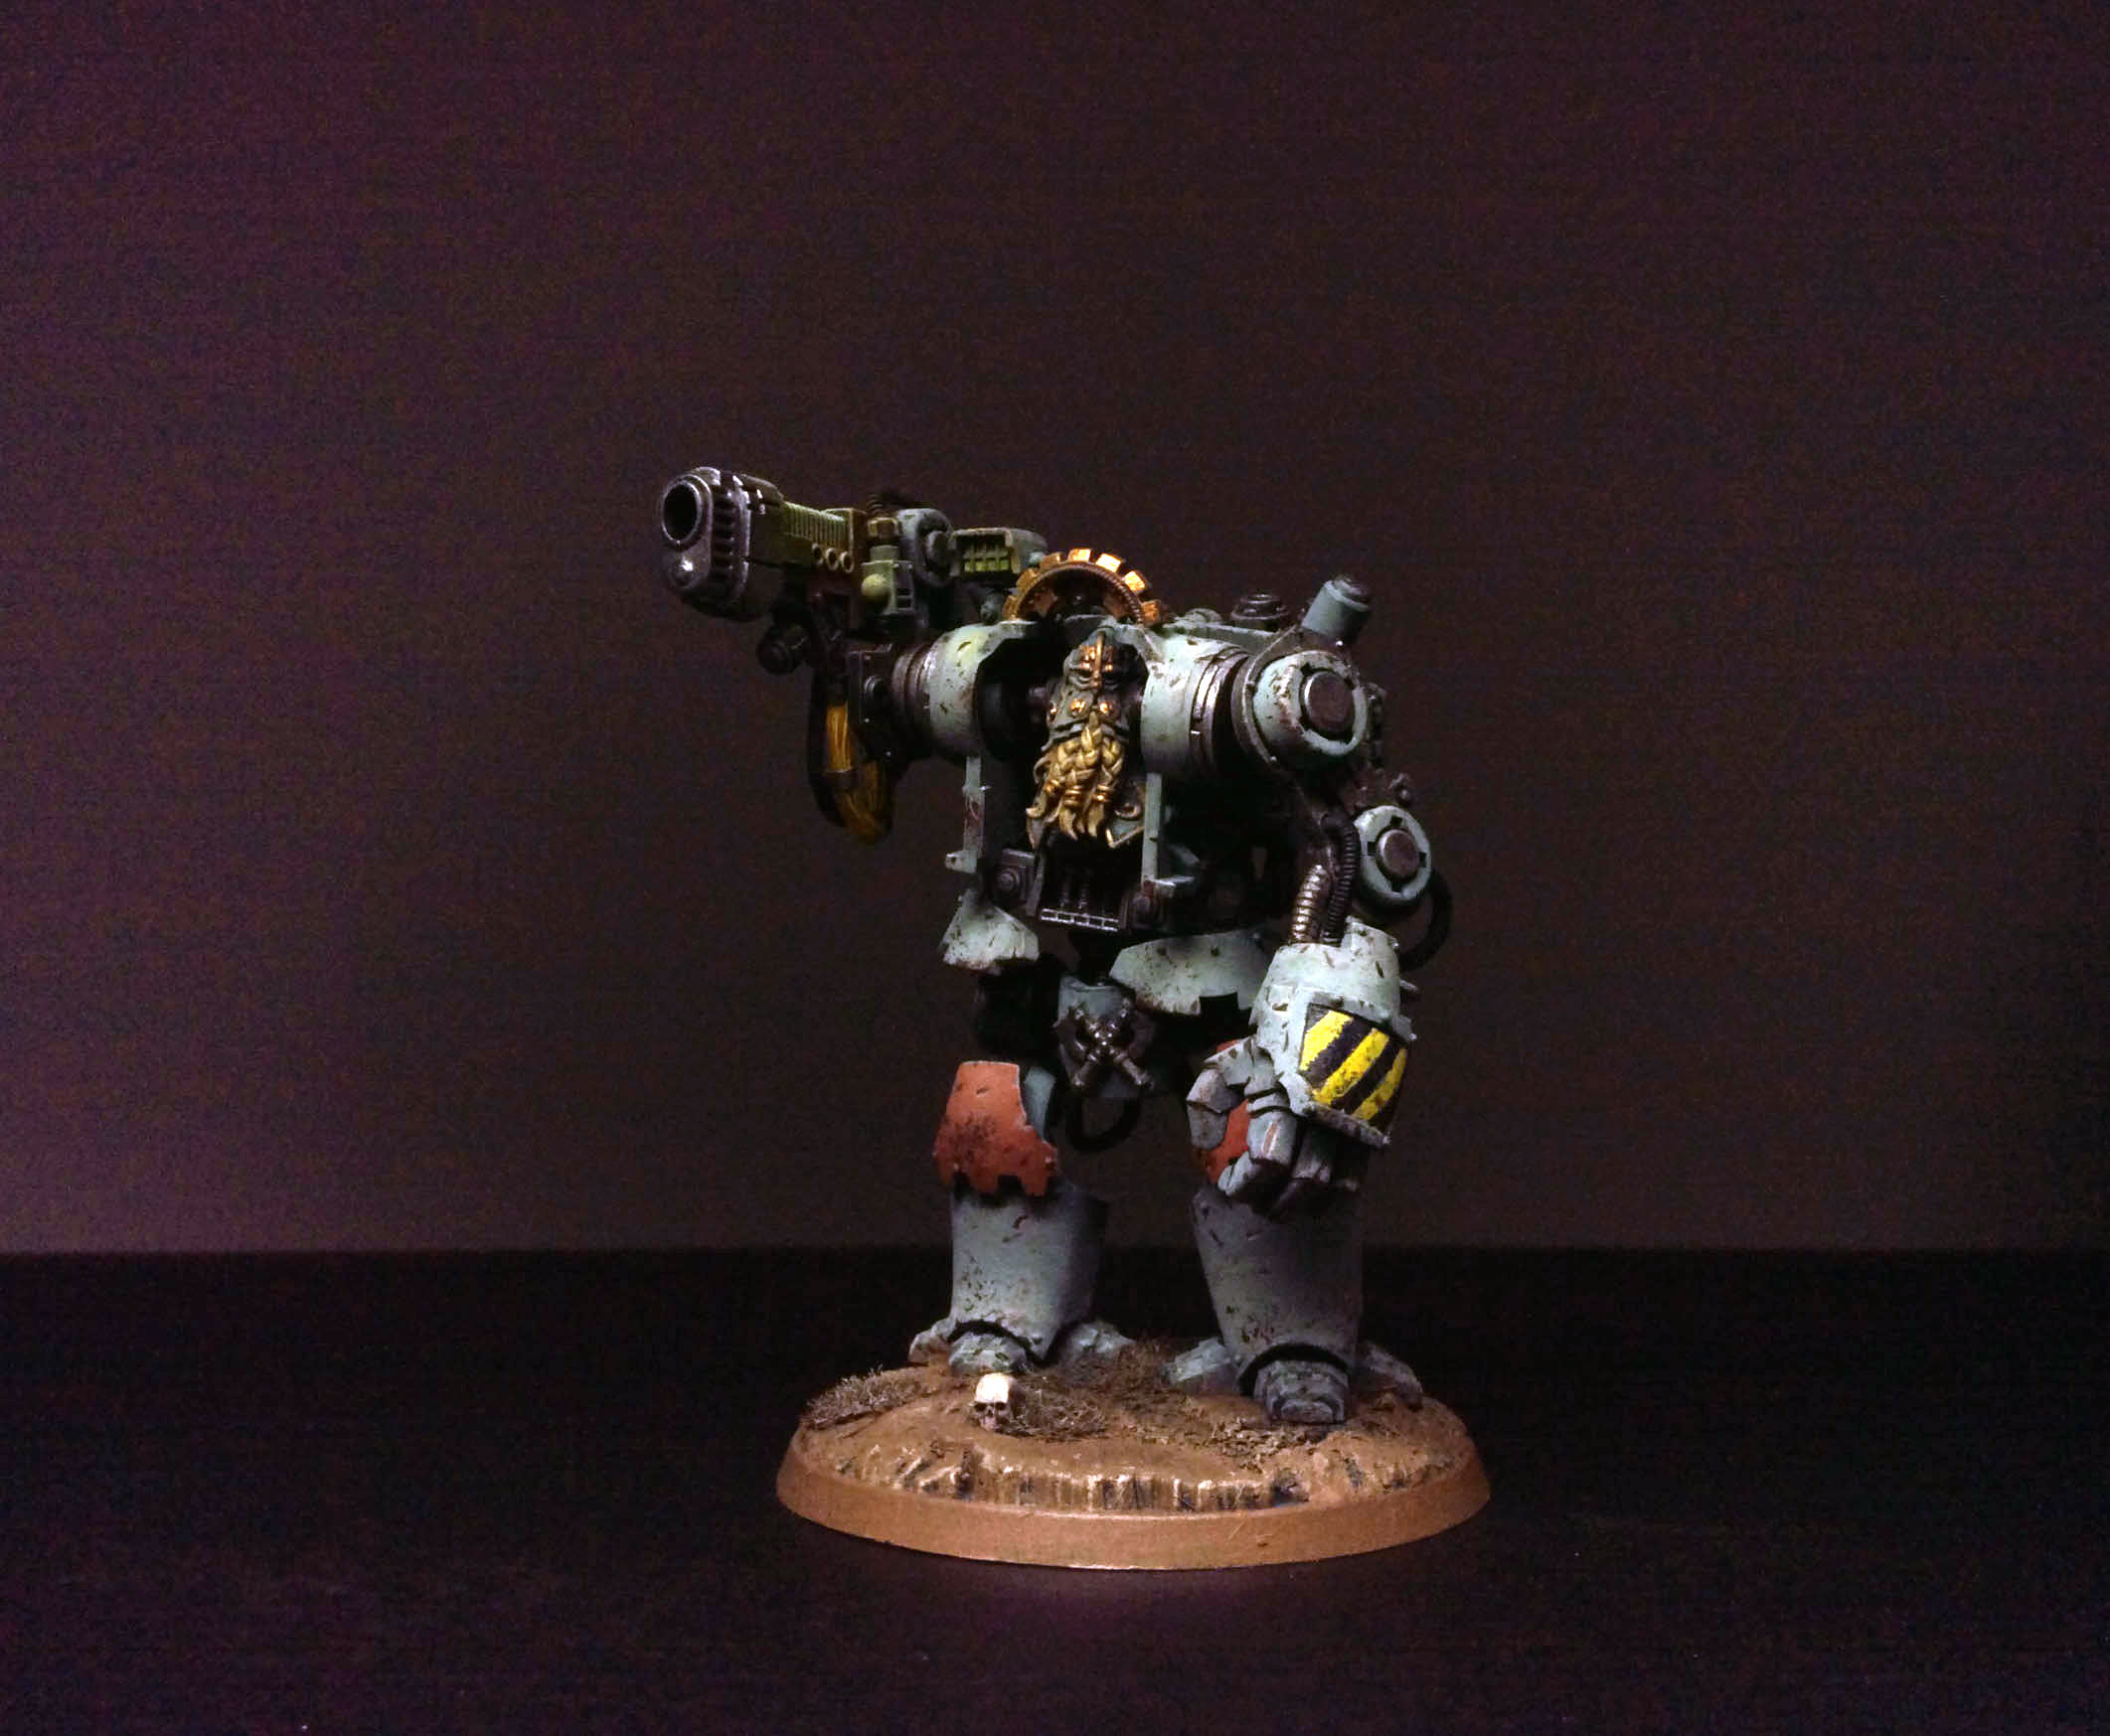 Horus Heresy Plastic Space Marines by GW CONFIRMED (images 1st post